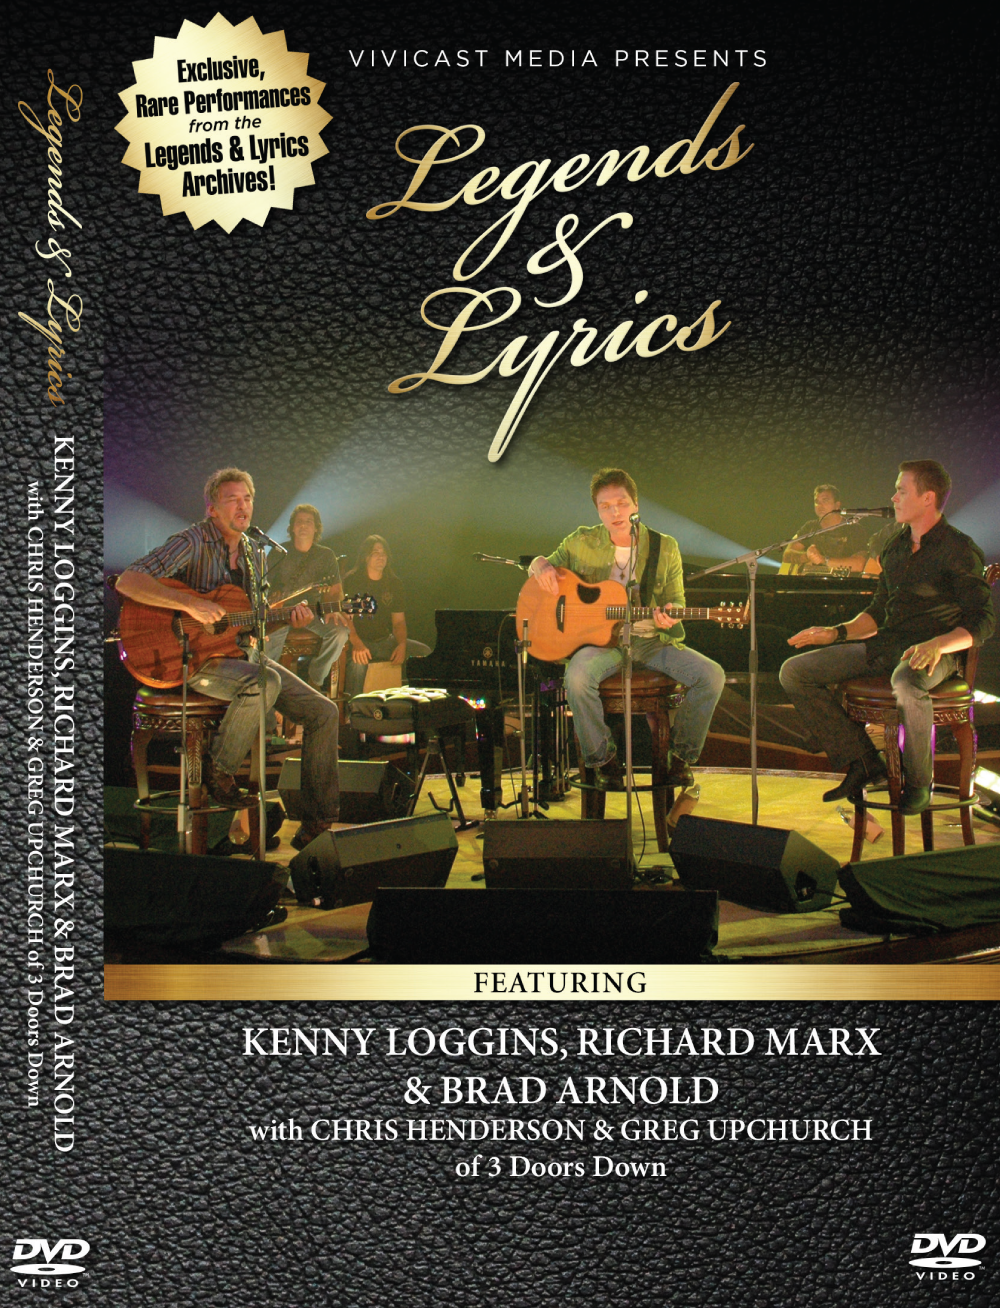 L&L Episode 1: Kenny Loggins, Richard Marx, Brad Arnold